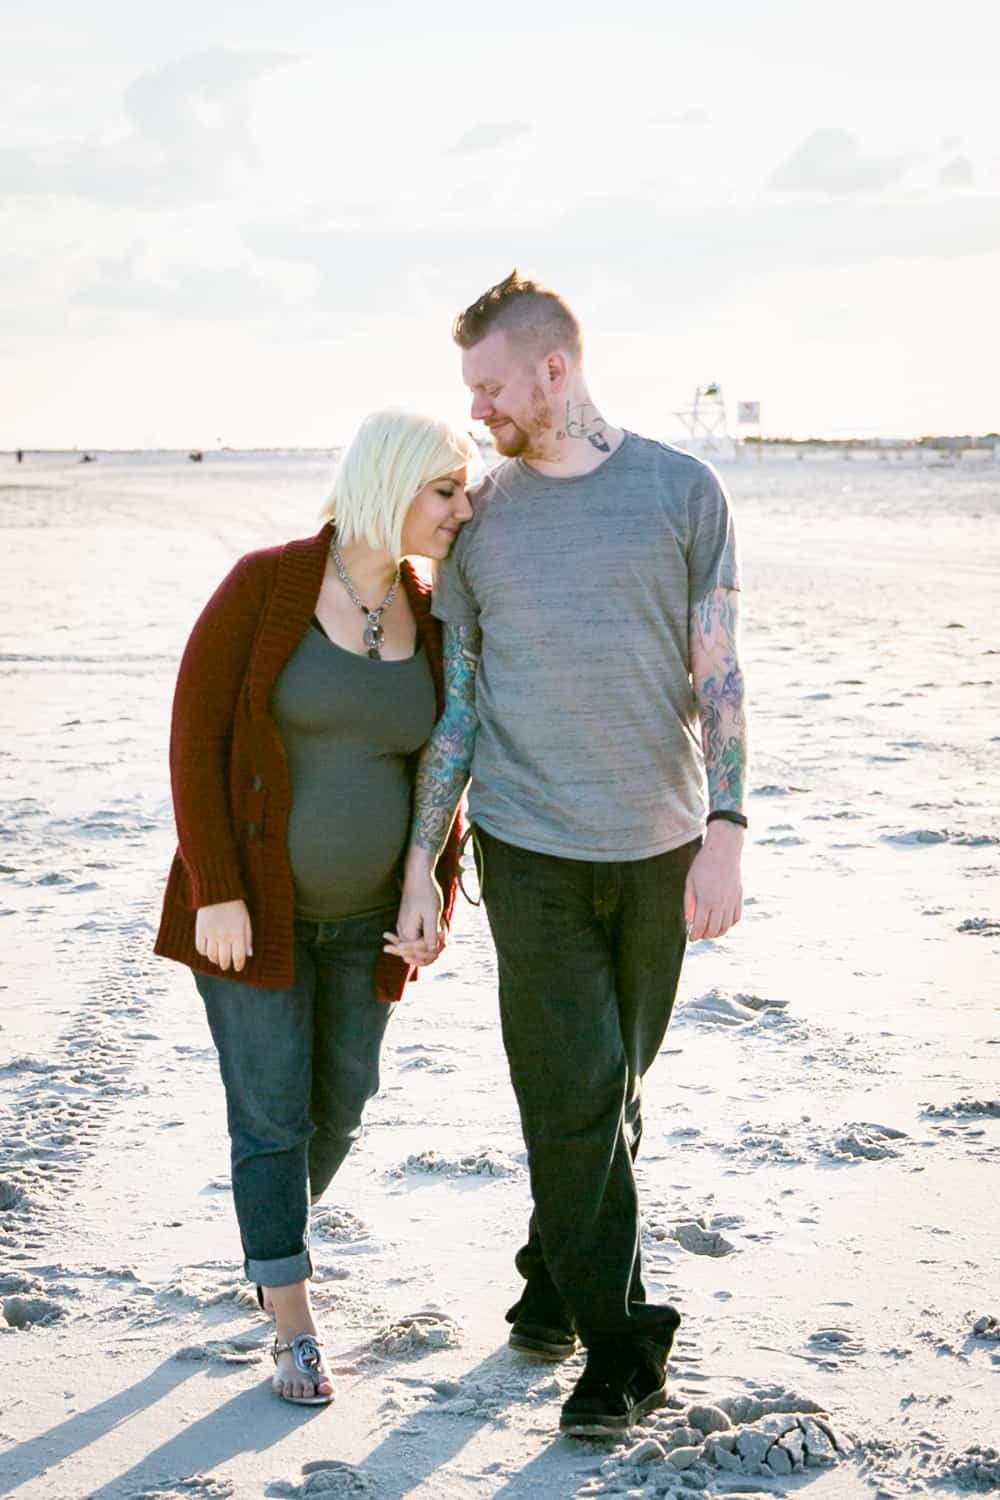 Pregnant blond woman and partner on beach for an article on how to prepare for a maternity photo shoot